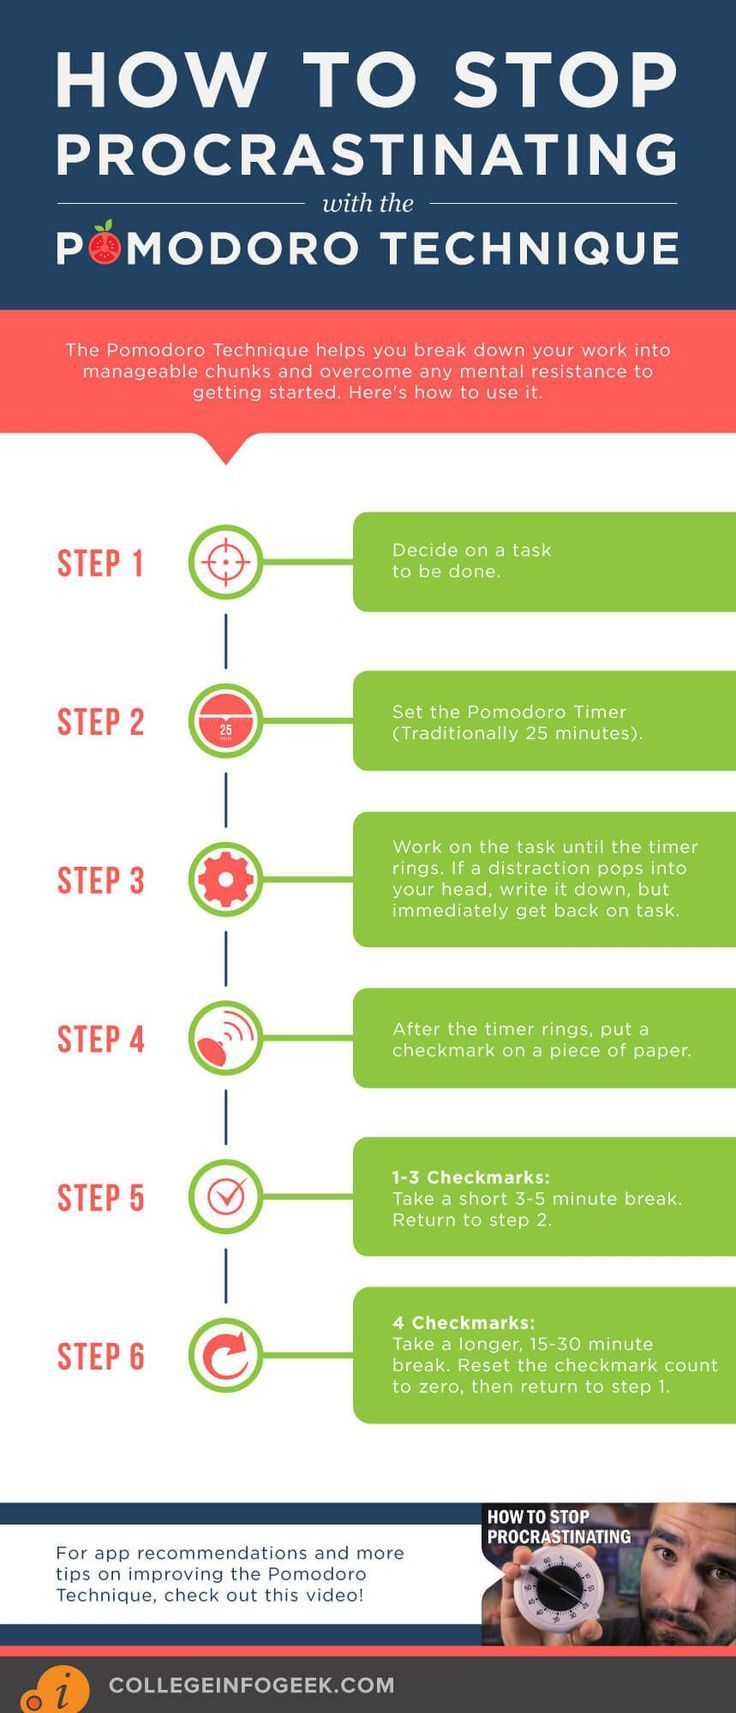 How to Stop Procrastinating and Focus A Guide to the Pomodoro Technique Help   How to Stop Procrastinating and Focus A Guide to the Pomodoro Technique Help in your studie...